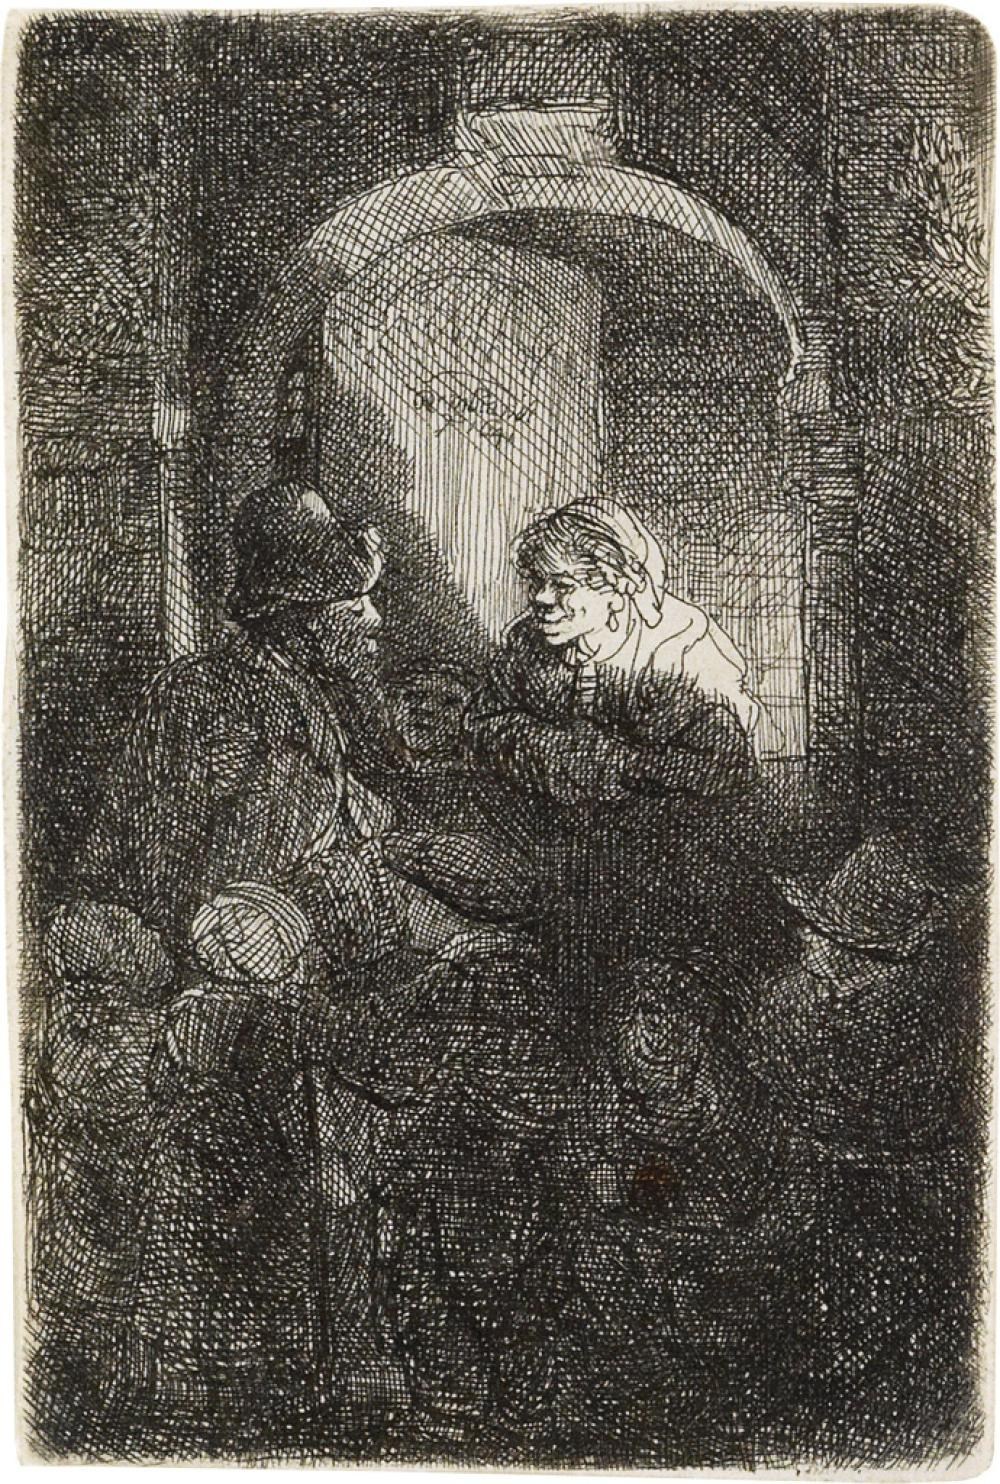 REMBRANDT VAN RIJN Woman at a Door Hatch Talking to a Man and Children.